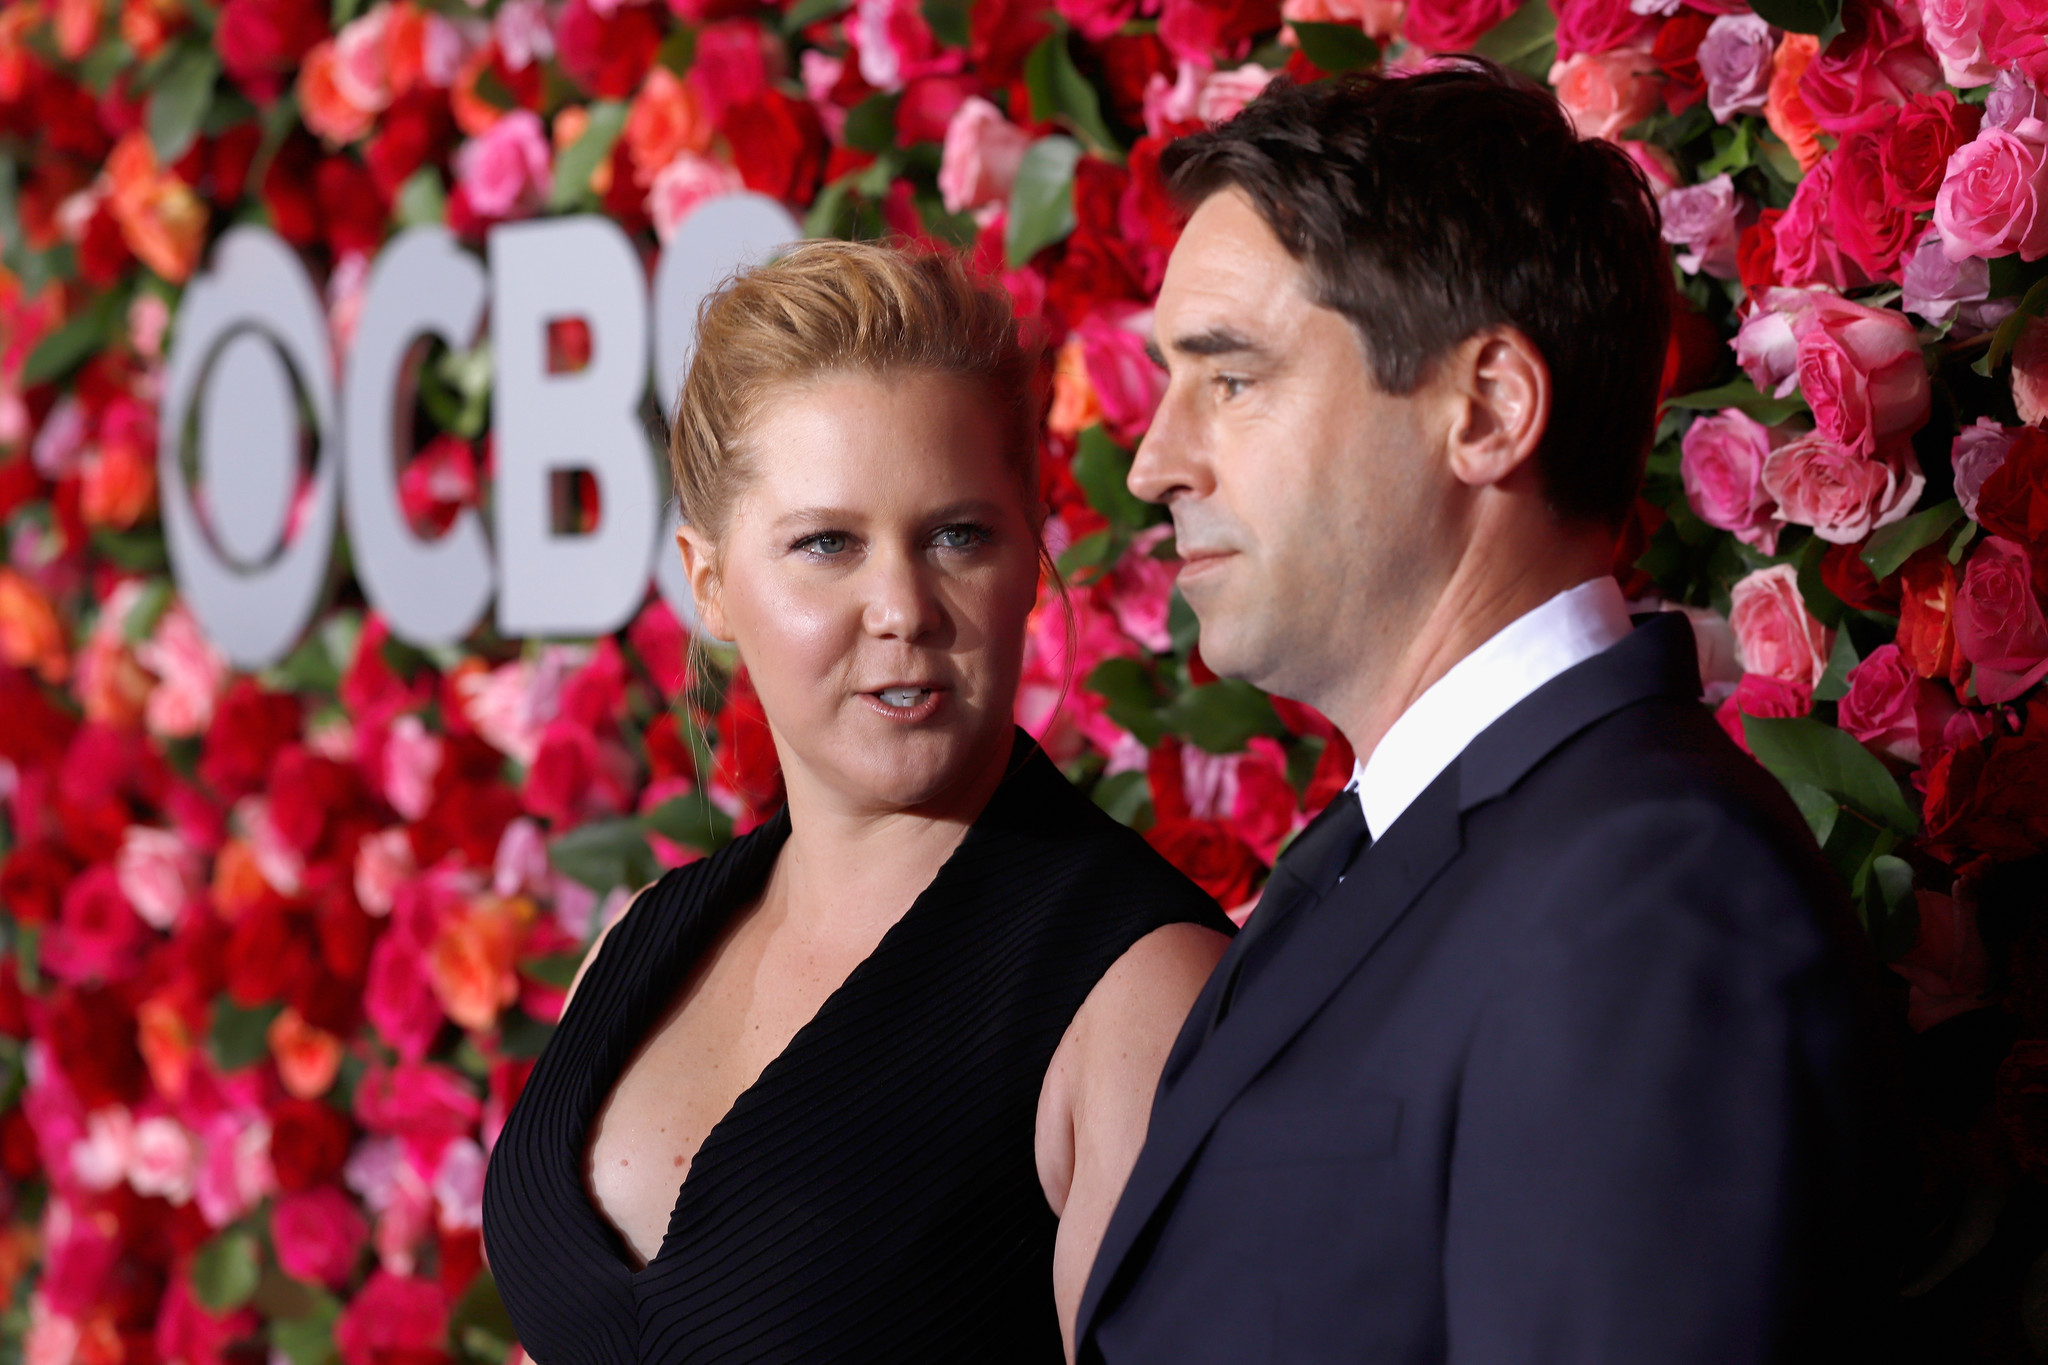 Amy Schumer's ex, Kyle Dunnigan, has been living with her and husband Chris Fischer since late last year